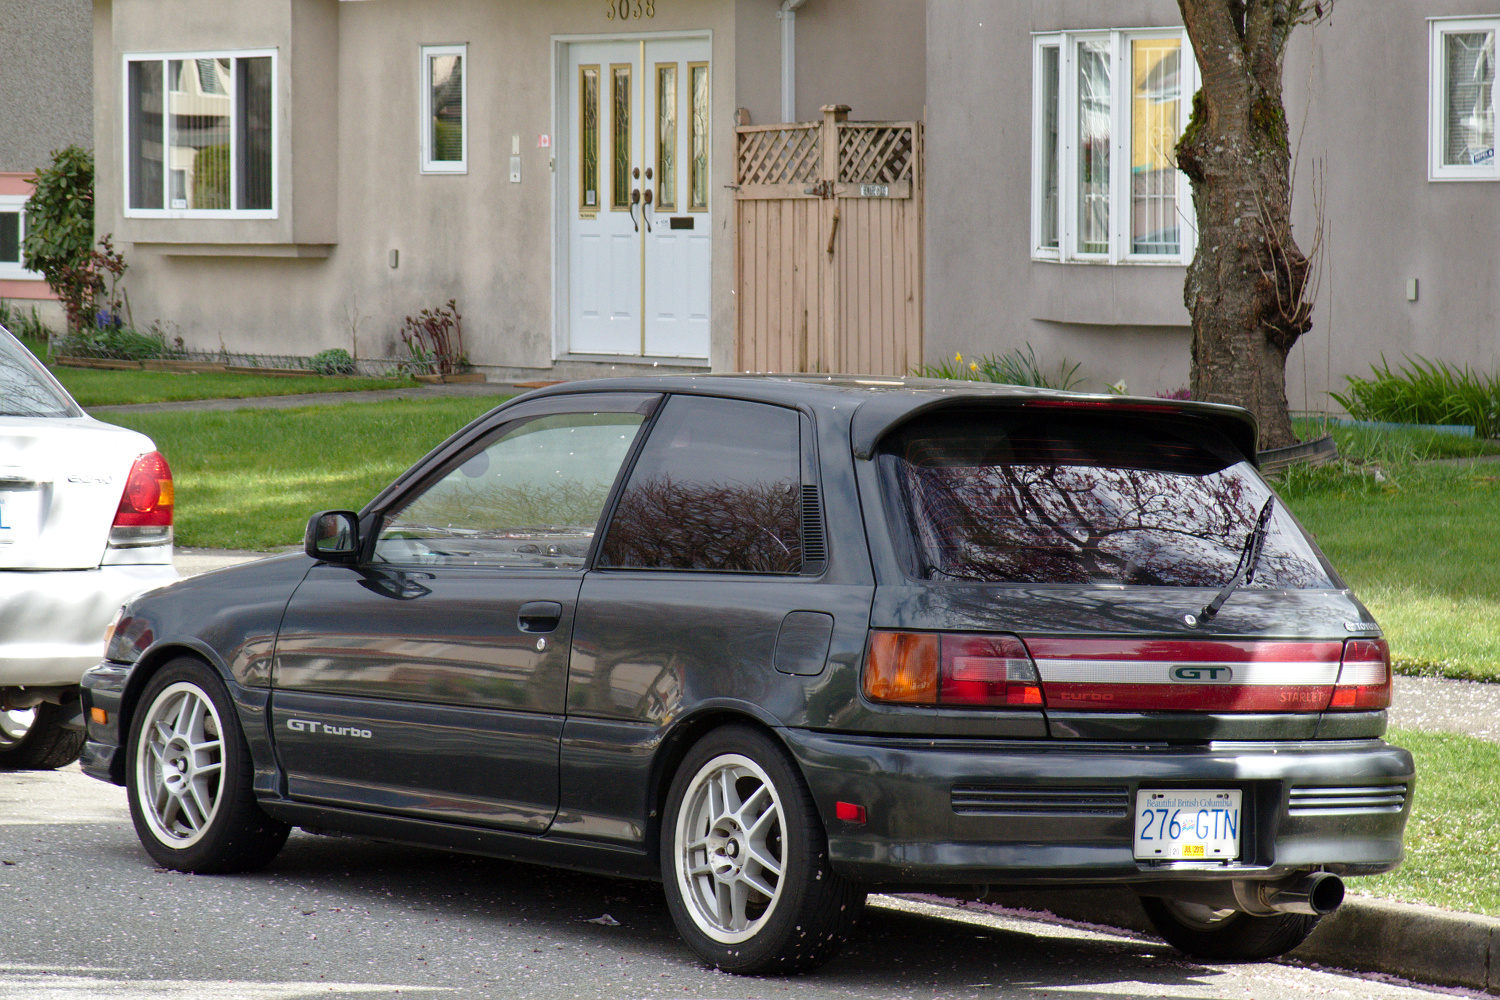 1985 Honda Accord >> Old Parked Cars Vancouver: 1990 Toyota Starlet GT Turbo